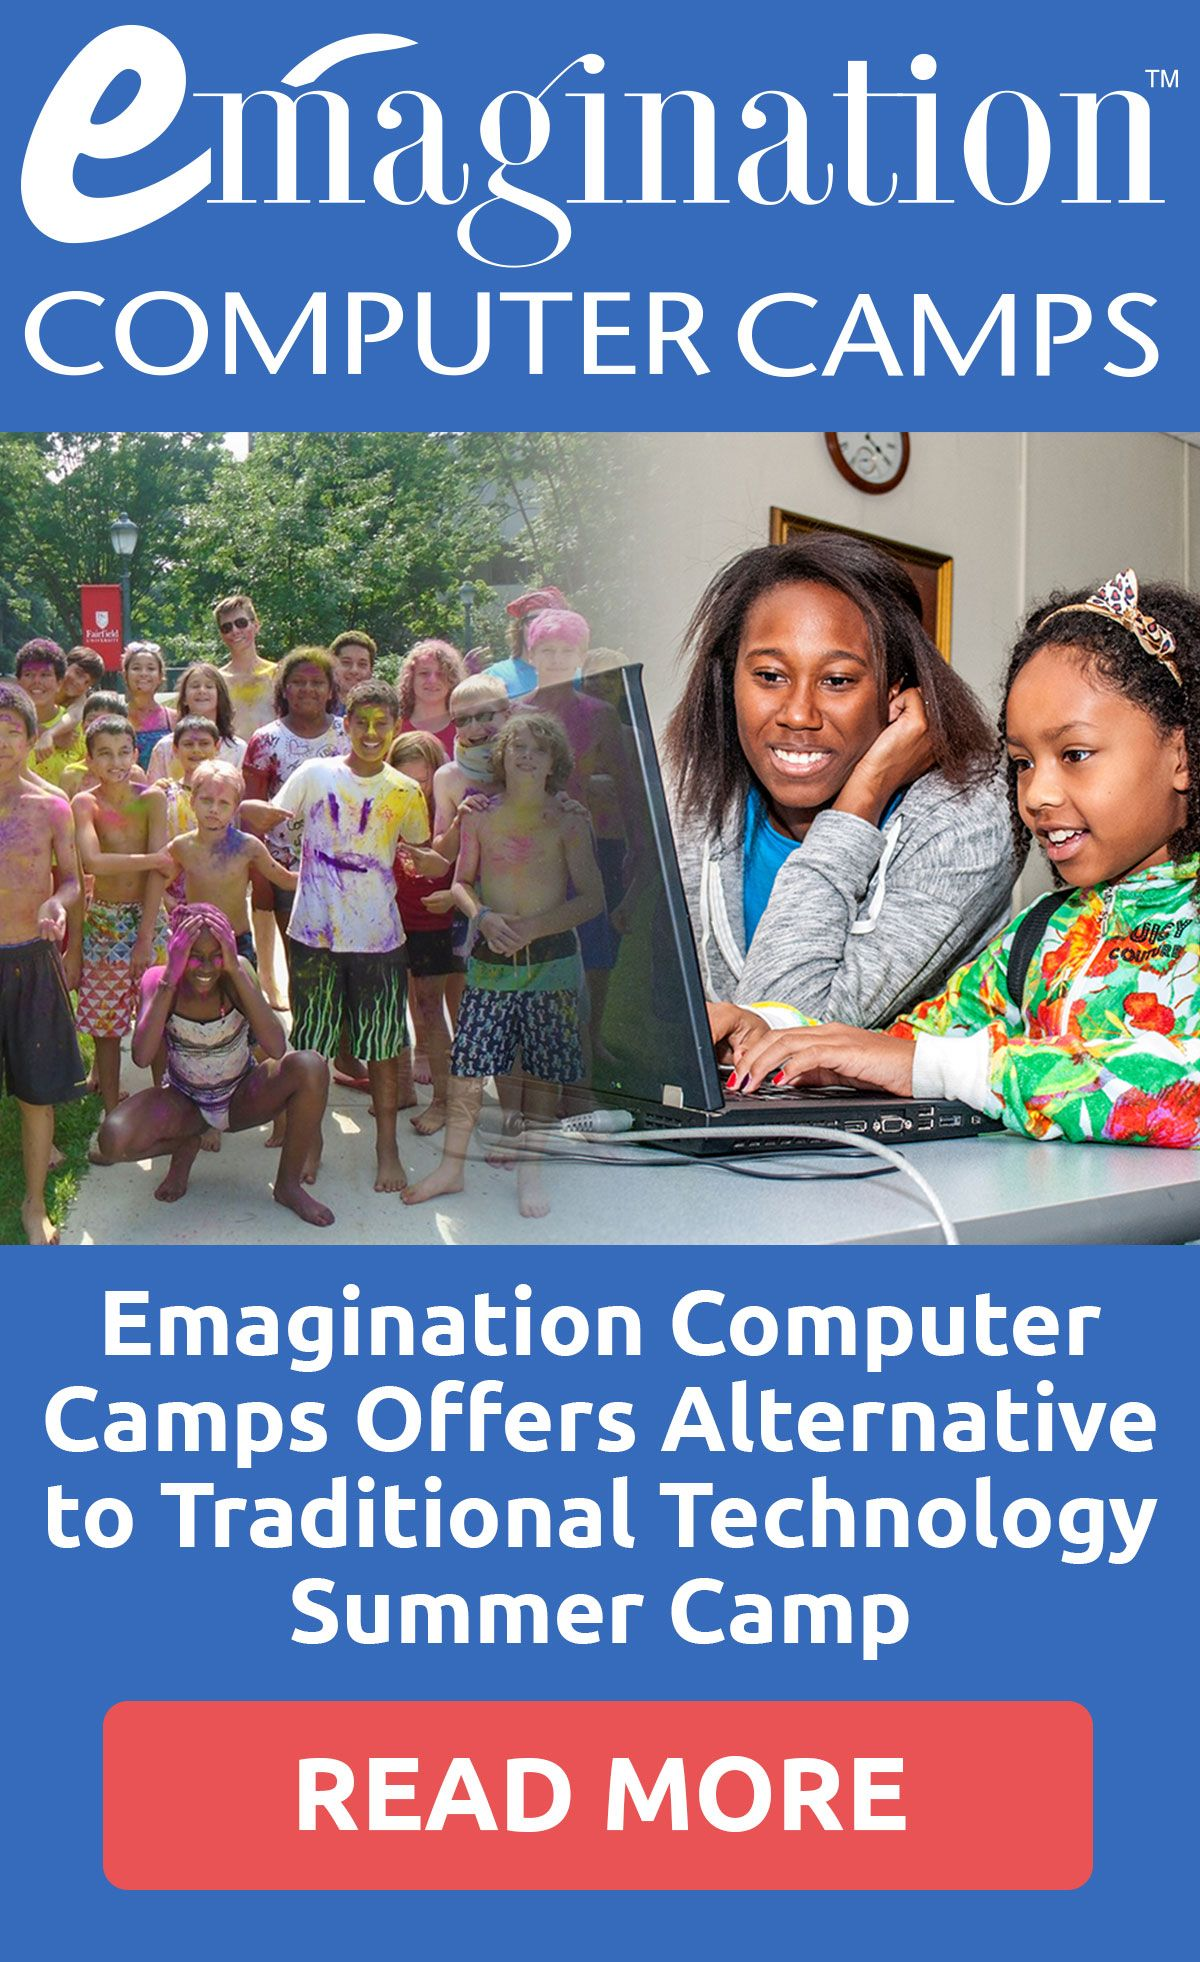 Emagination Computer Camps Offers Alternative To Traditional Technology Camps Technology Camp Computer Camp Summer Camps For Kids